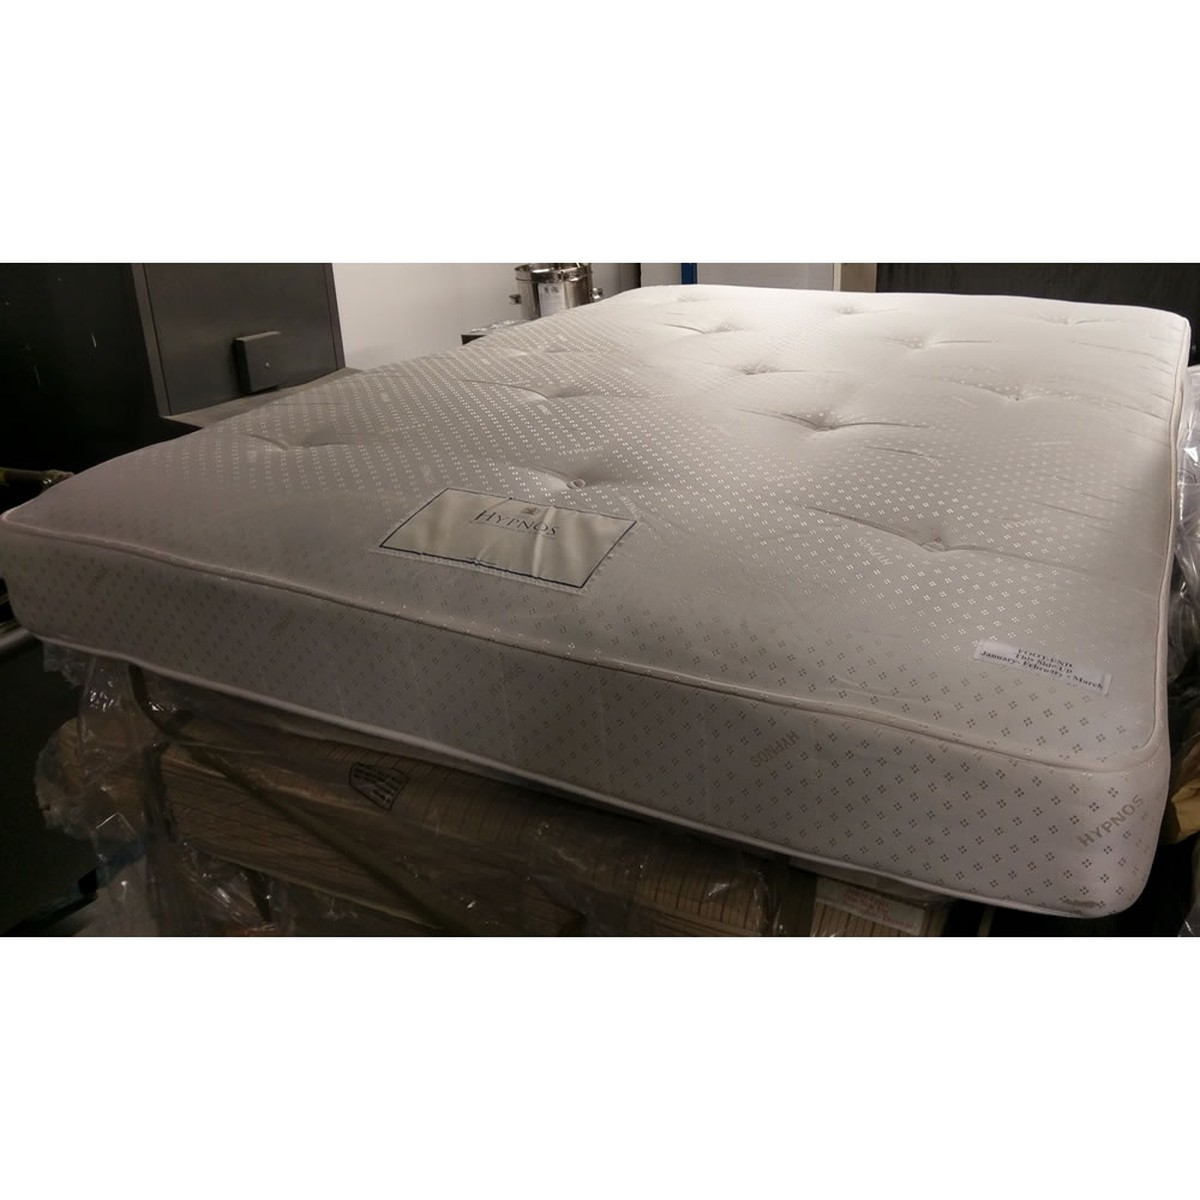 Second Hand King Size Mattress Secondhand Hotel Furniture Beds Ex Hotel Hypnos Beds Singles